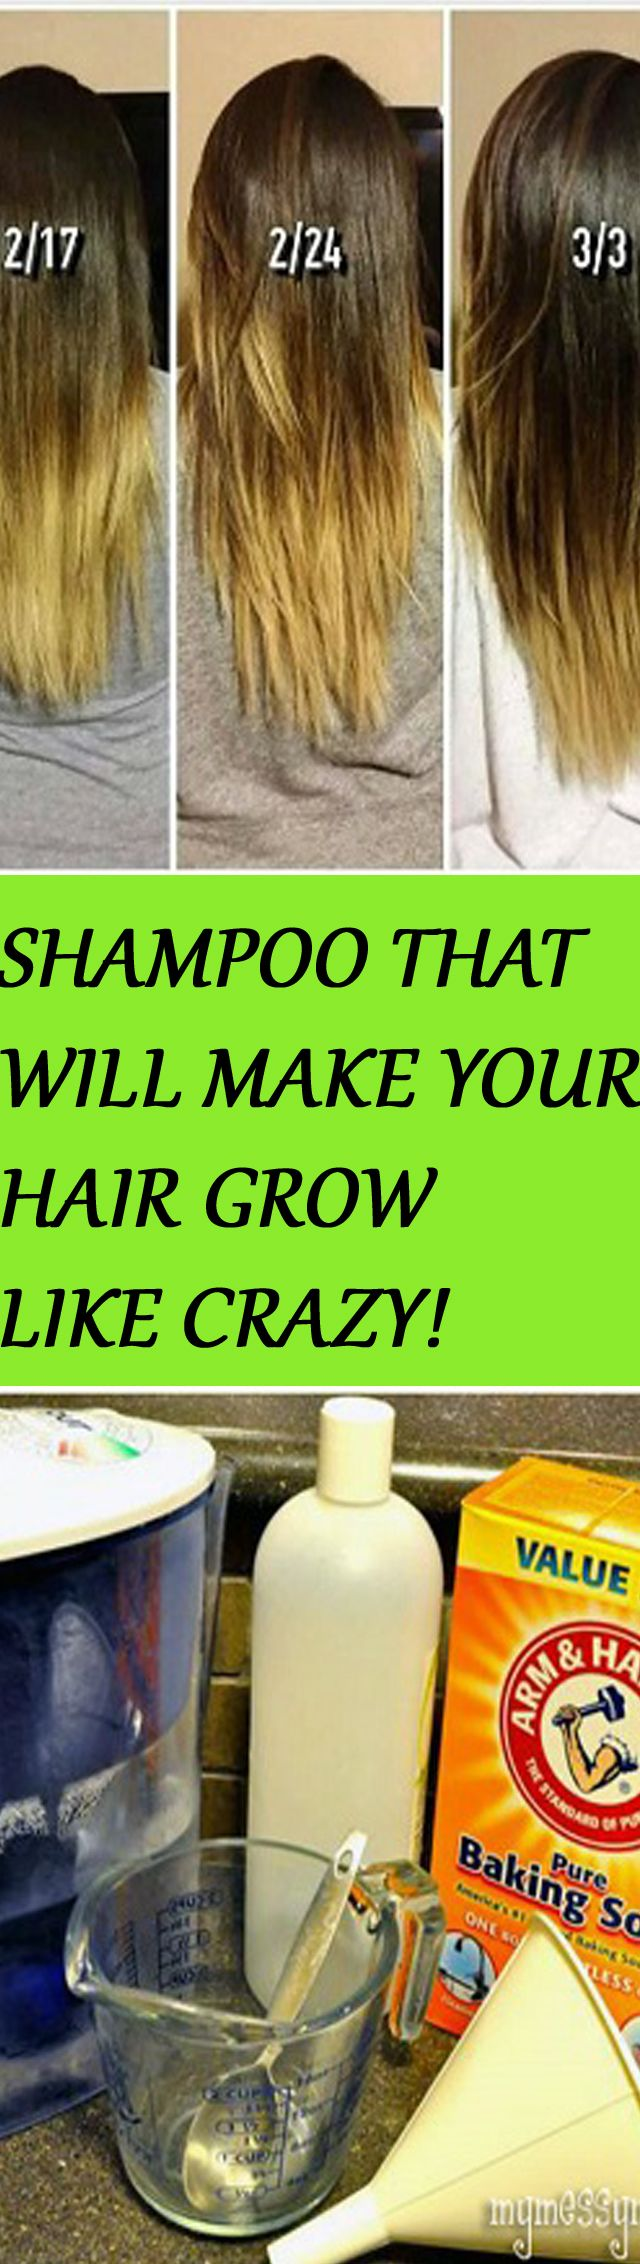 THIS NATURAL SHAMPOO WILL MAKE YOUR HAIR GROW LIKE CRAZY!